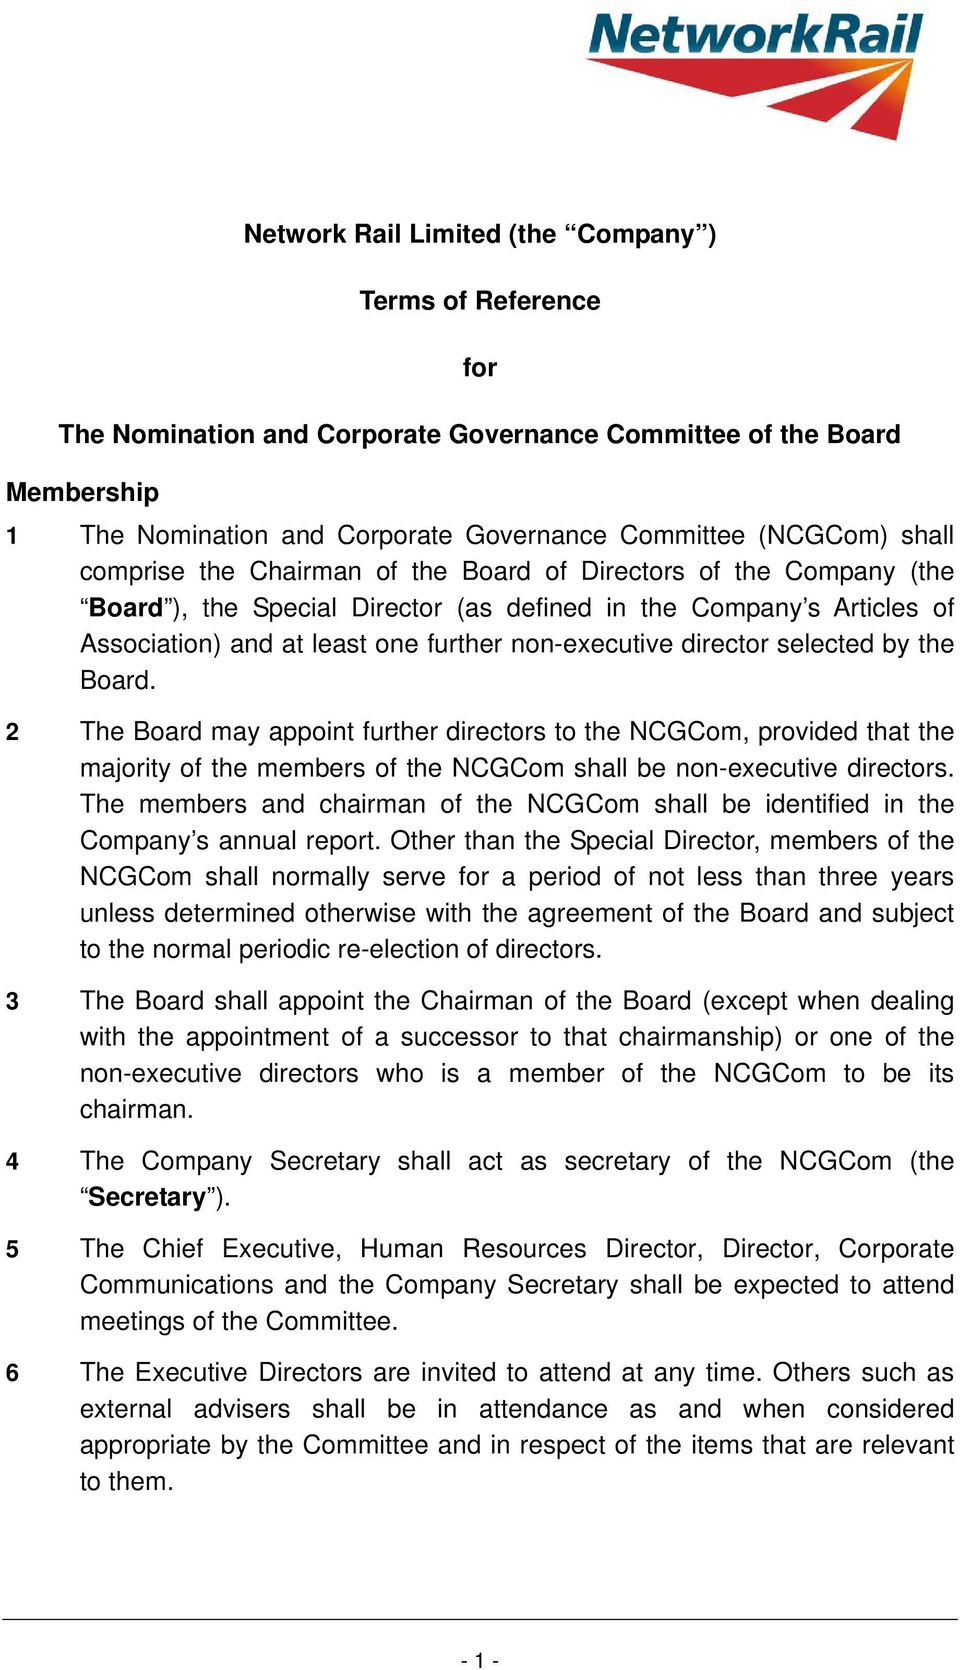 selected by the Board. 2 The Board may appoint further directors to the NCGCom, provided that the majority of the members of the NCGCom shall be non-executive directors.